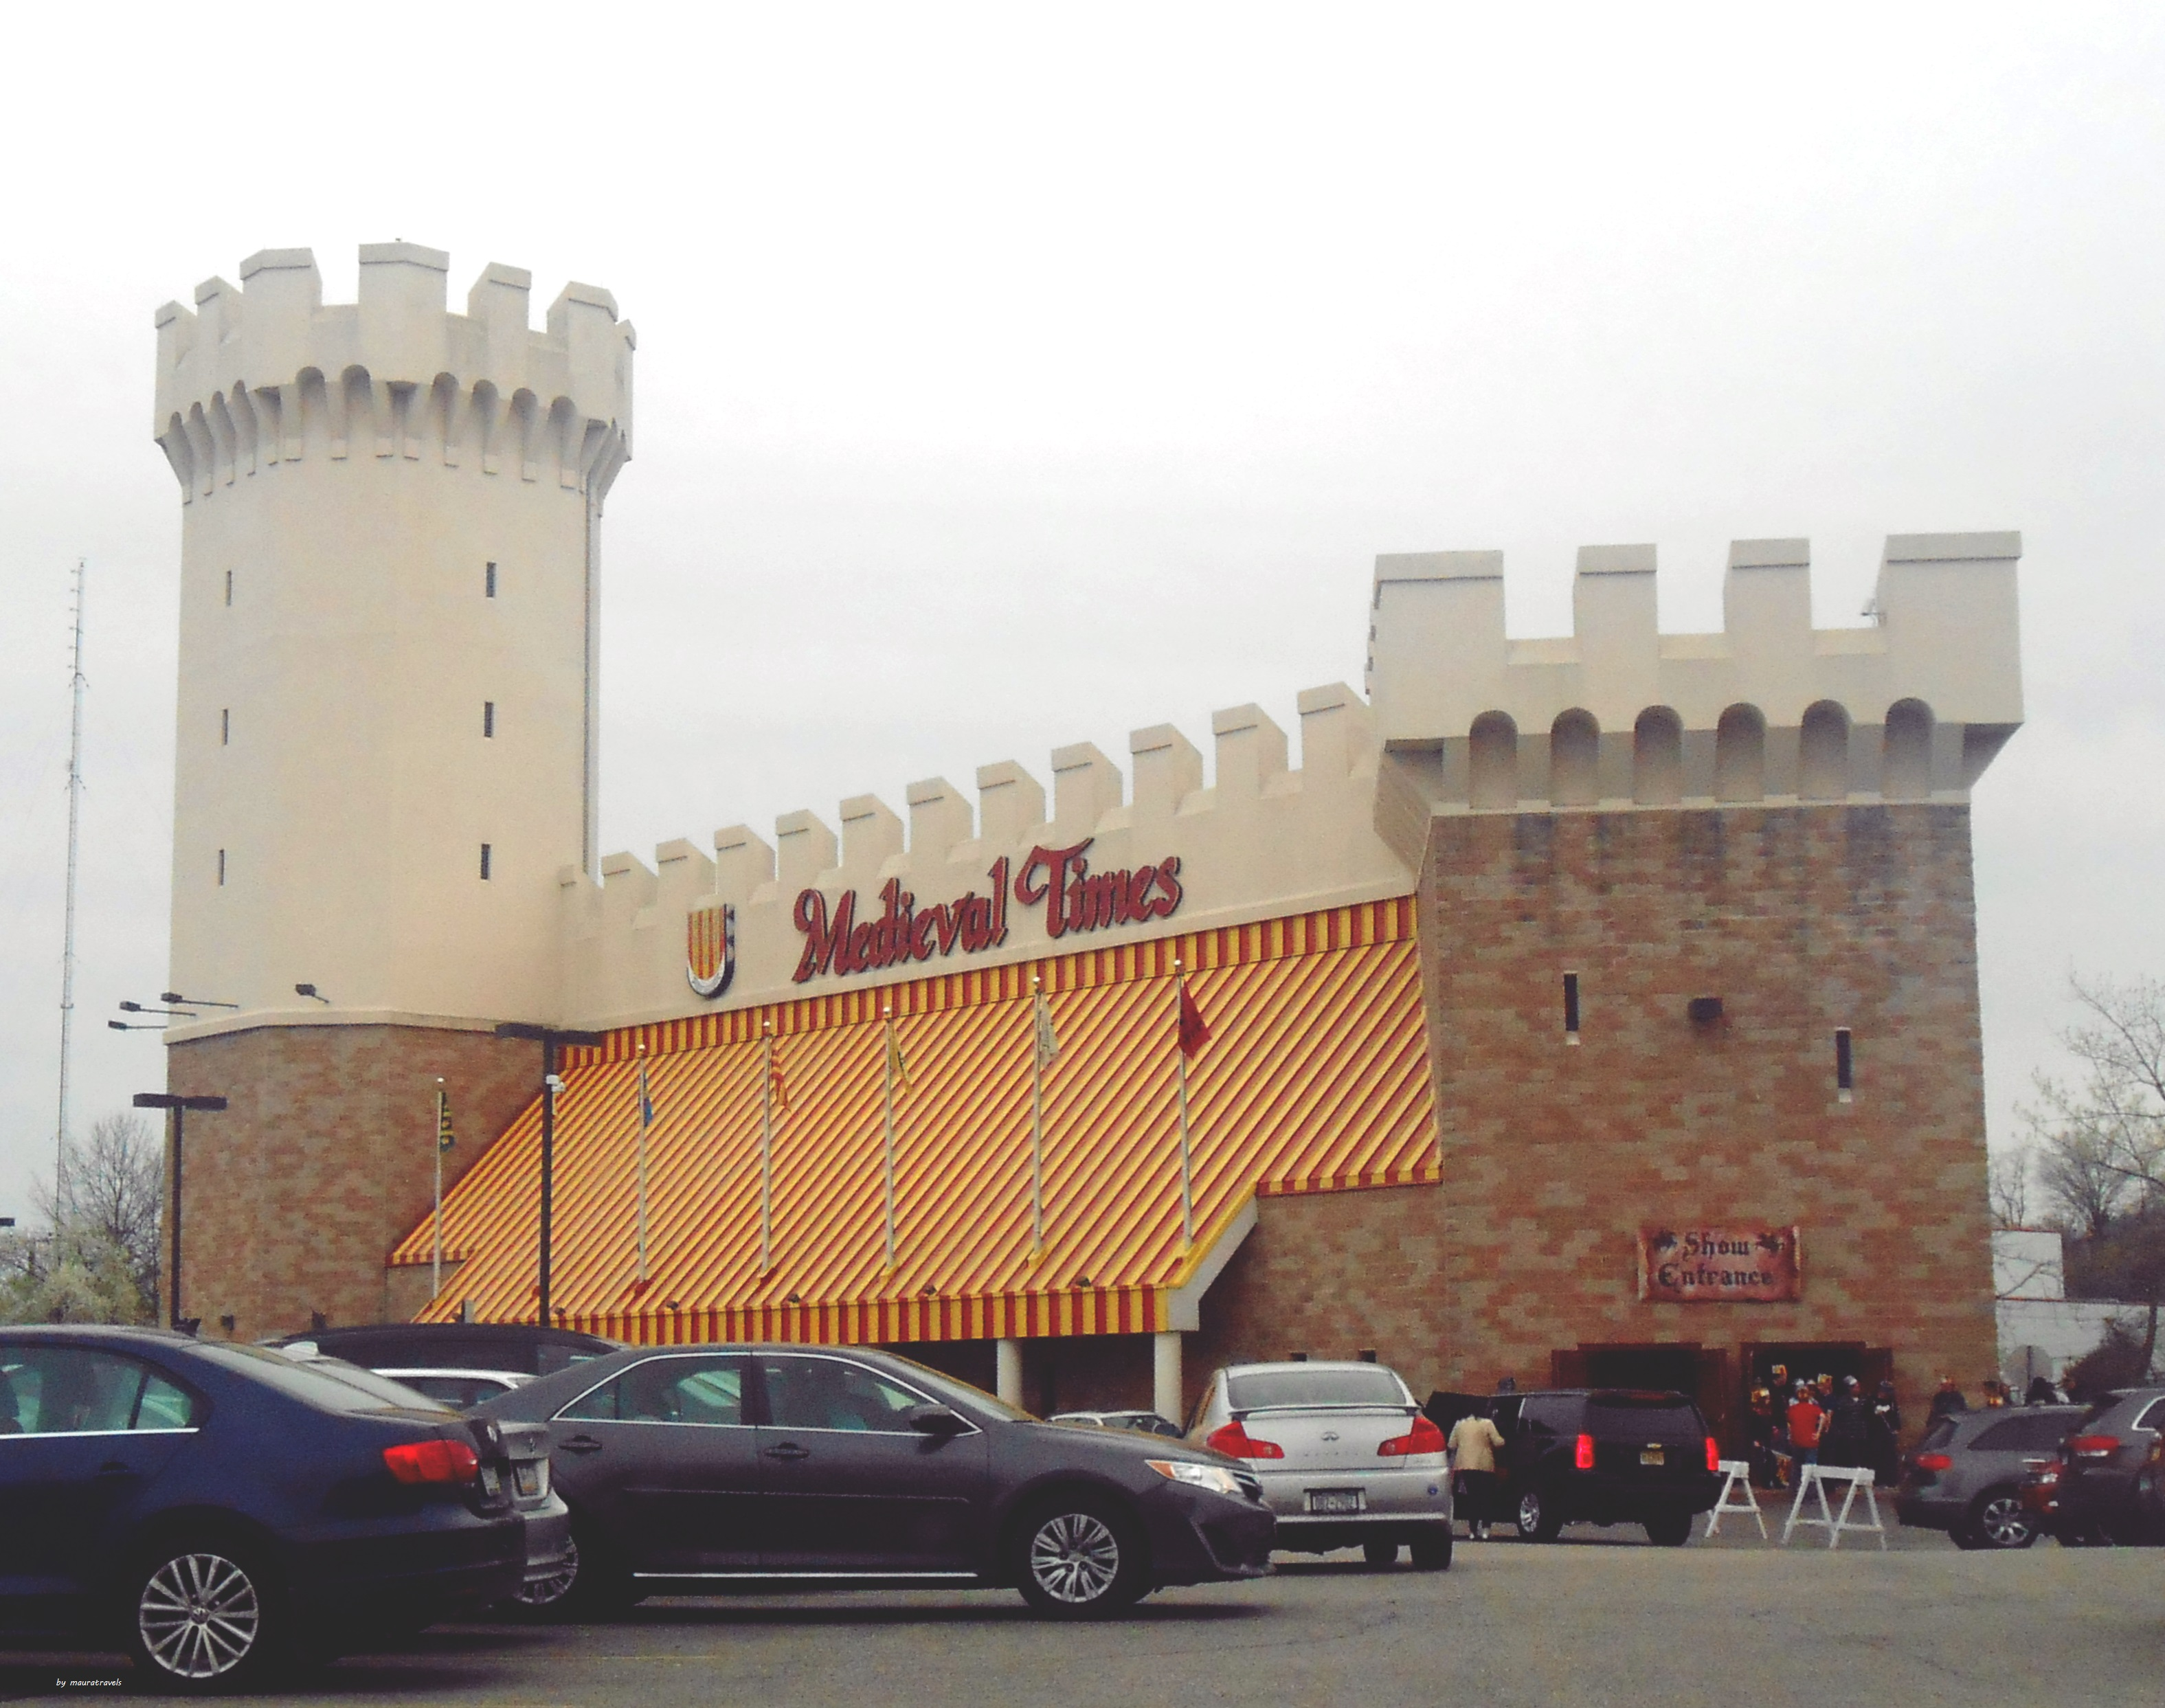 Nov 18, · Hello Your Grace! Thank you for your review of Medieval Times Lyndhurst. We're glad that you had a wonderful time cheering on your Knight!! We look forward to seeing you at Her Majesty's castle again soon.4/4().